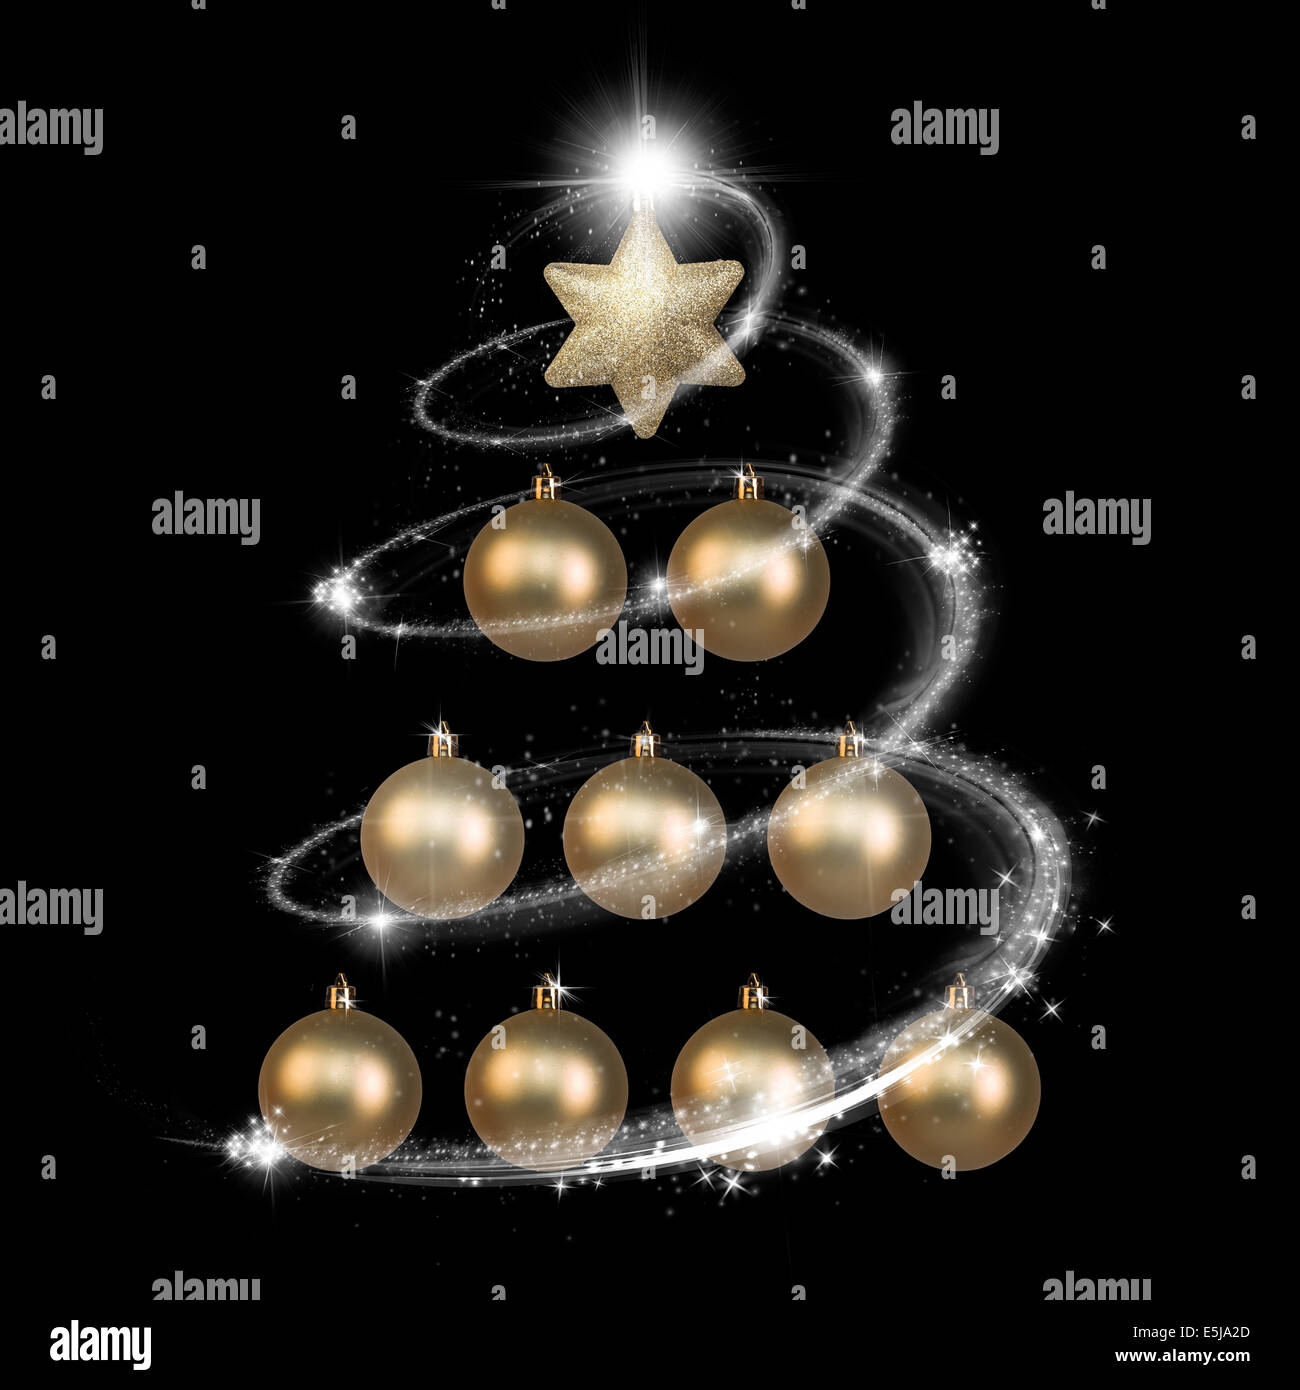 Elegant Christmas Tree Made With Gold Balls Over Black Background